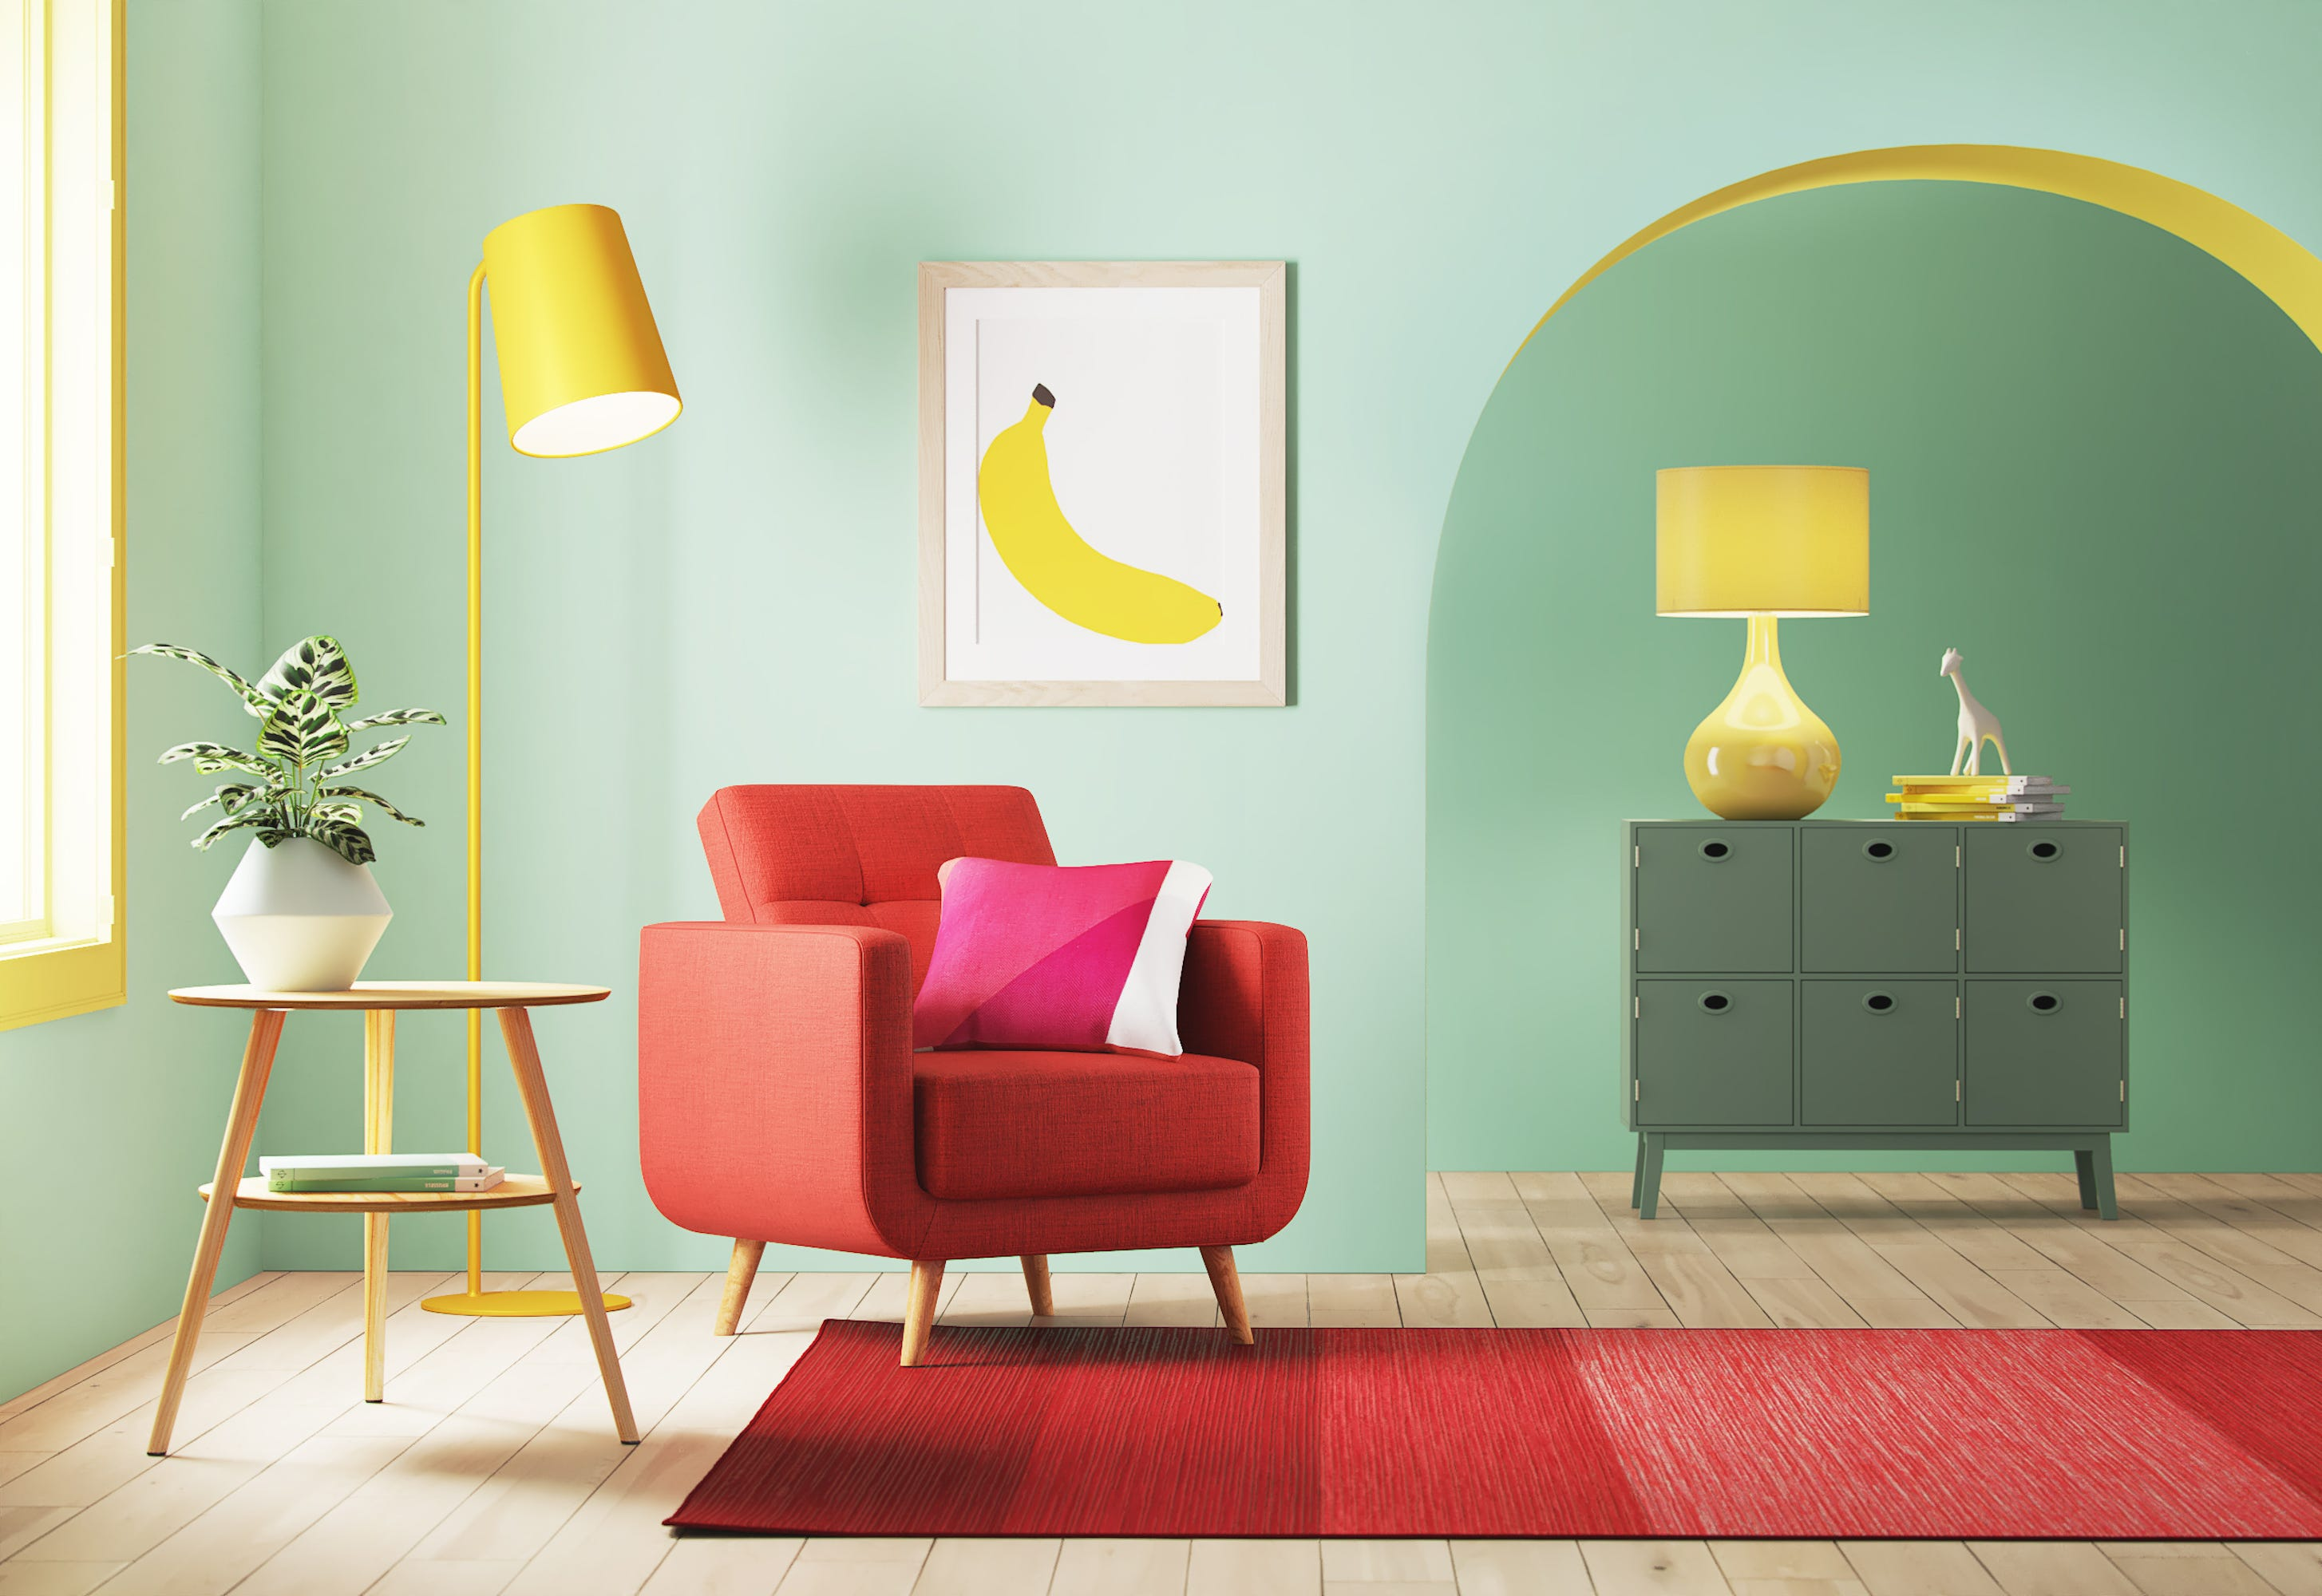 New Wayfair Hashtag Home Furniture Decor To Buy Now